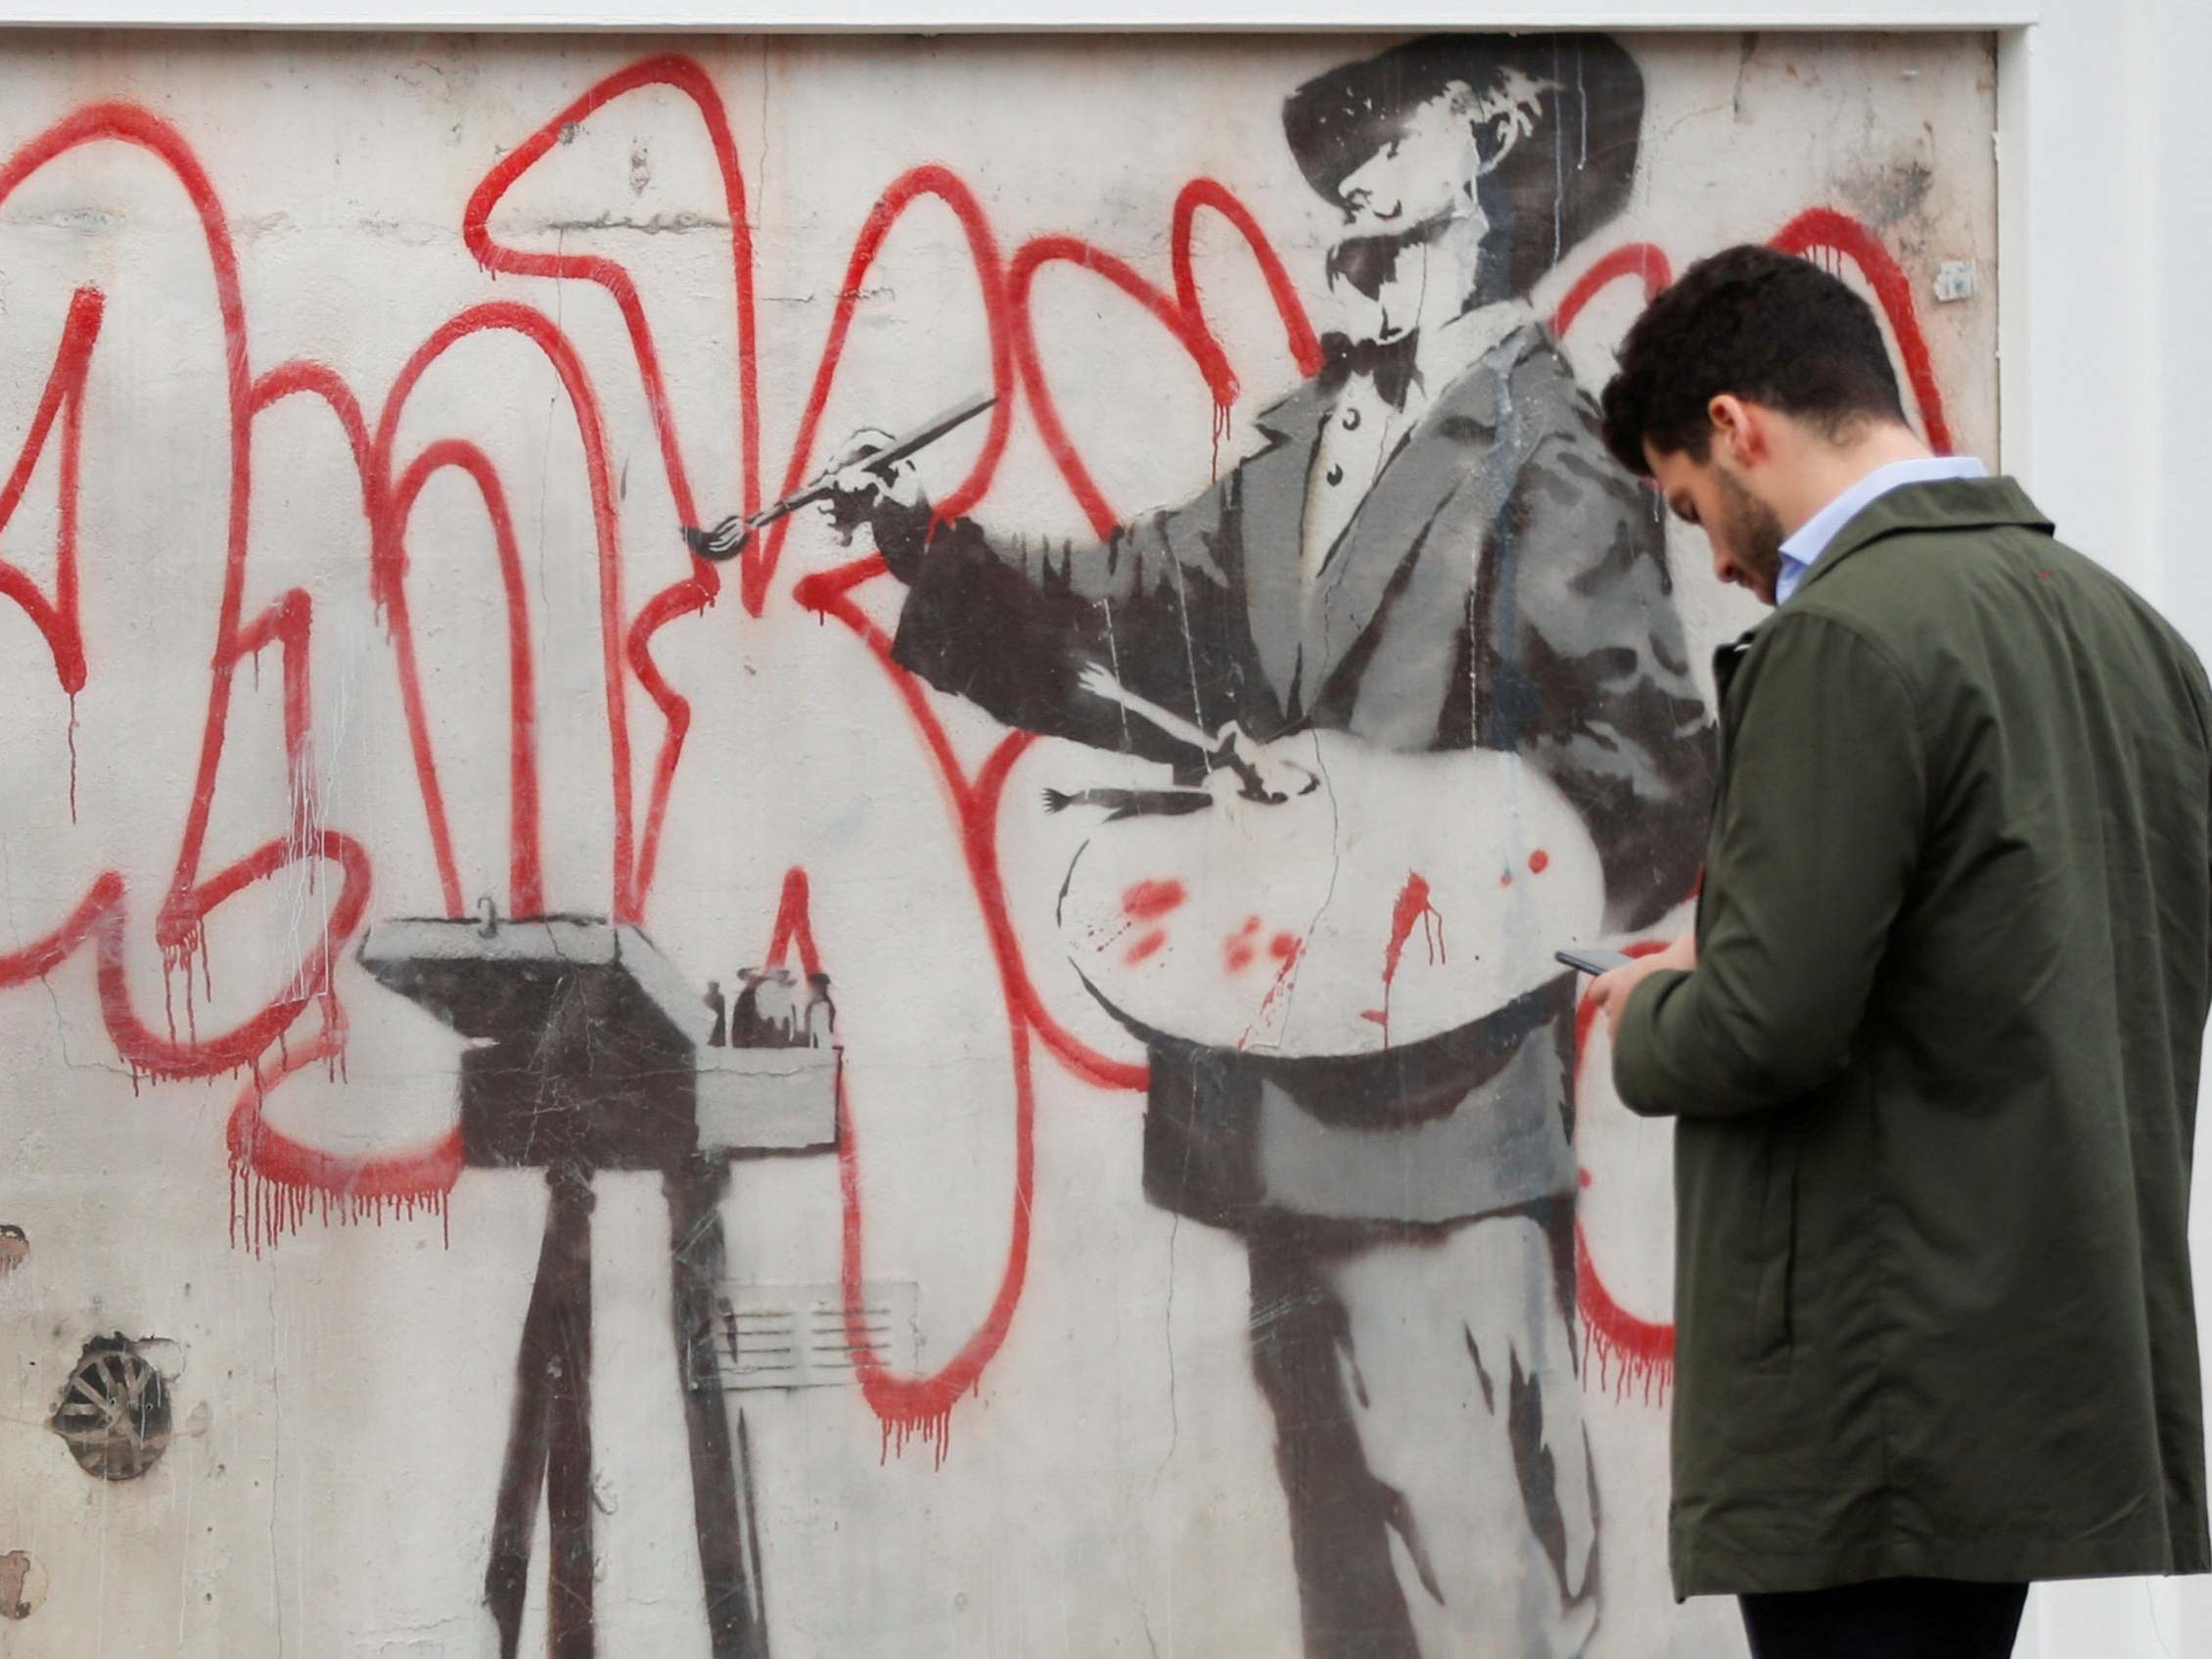 Banksy: Street artist's 2008 mural uncovered in London's Notting Hill